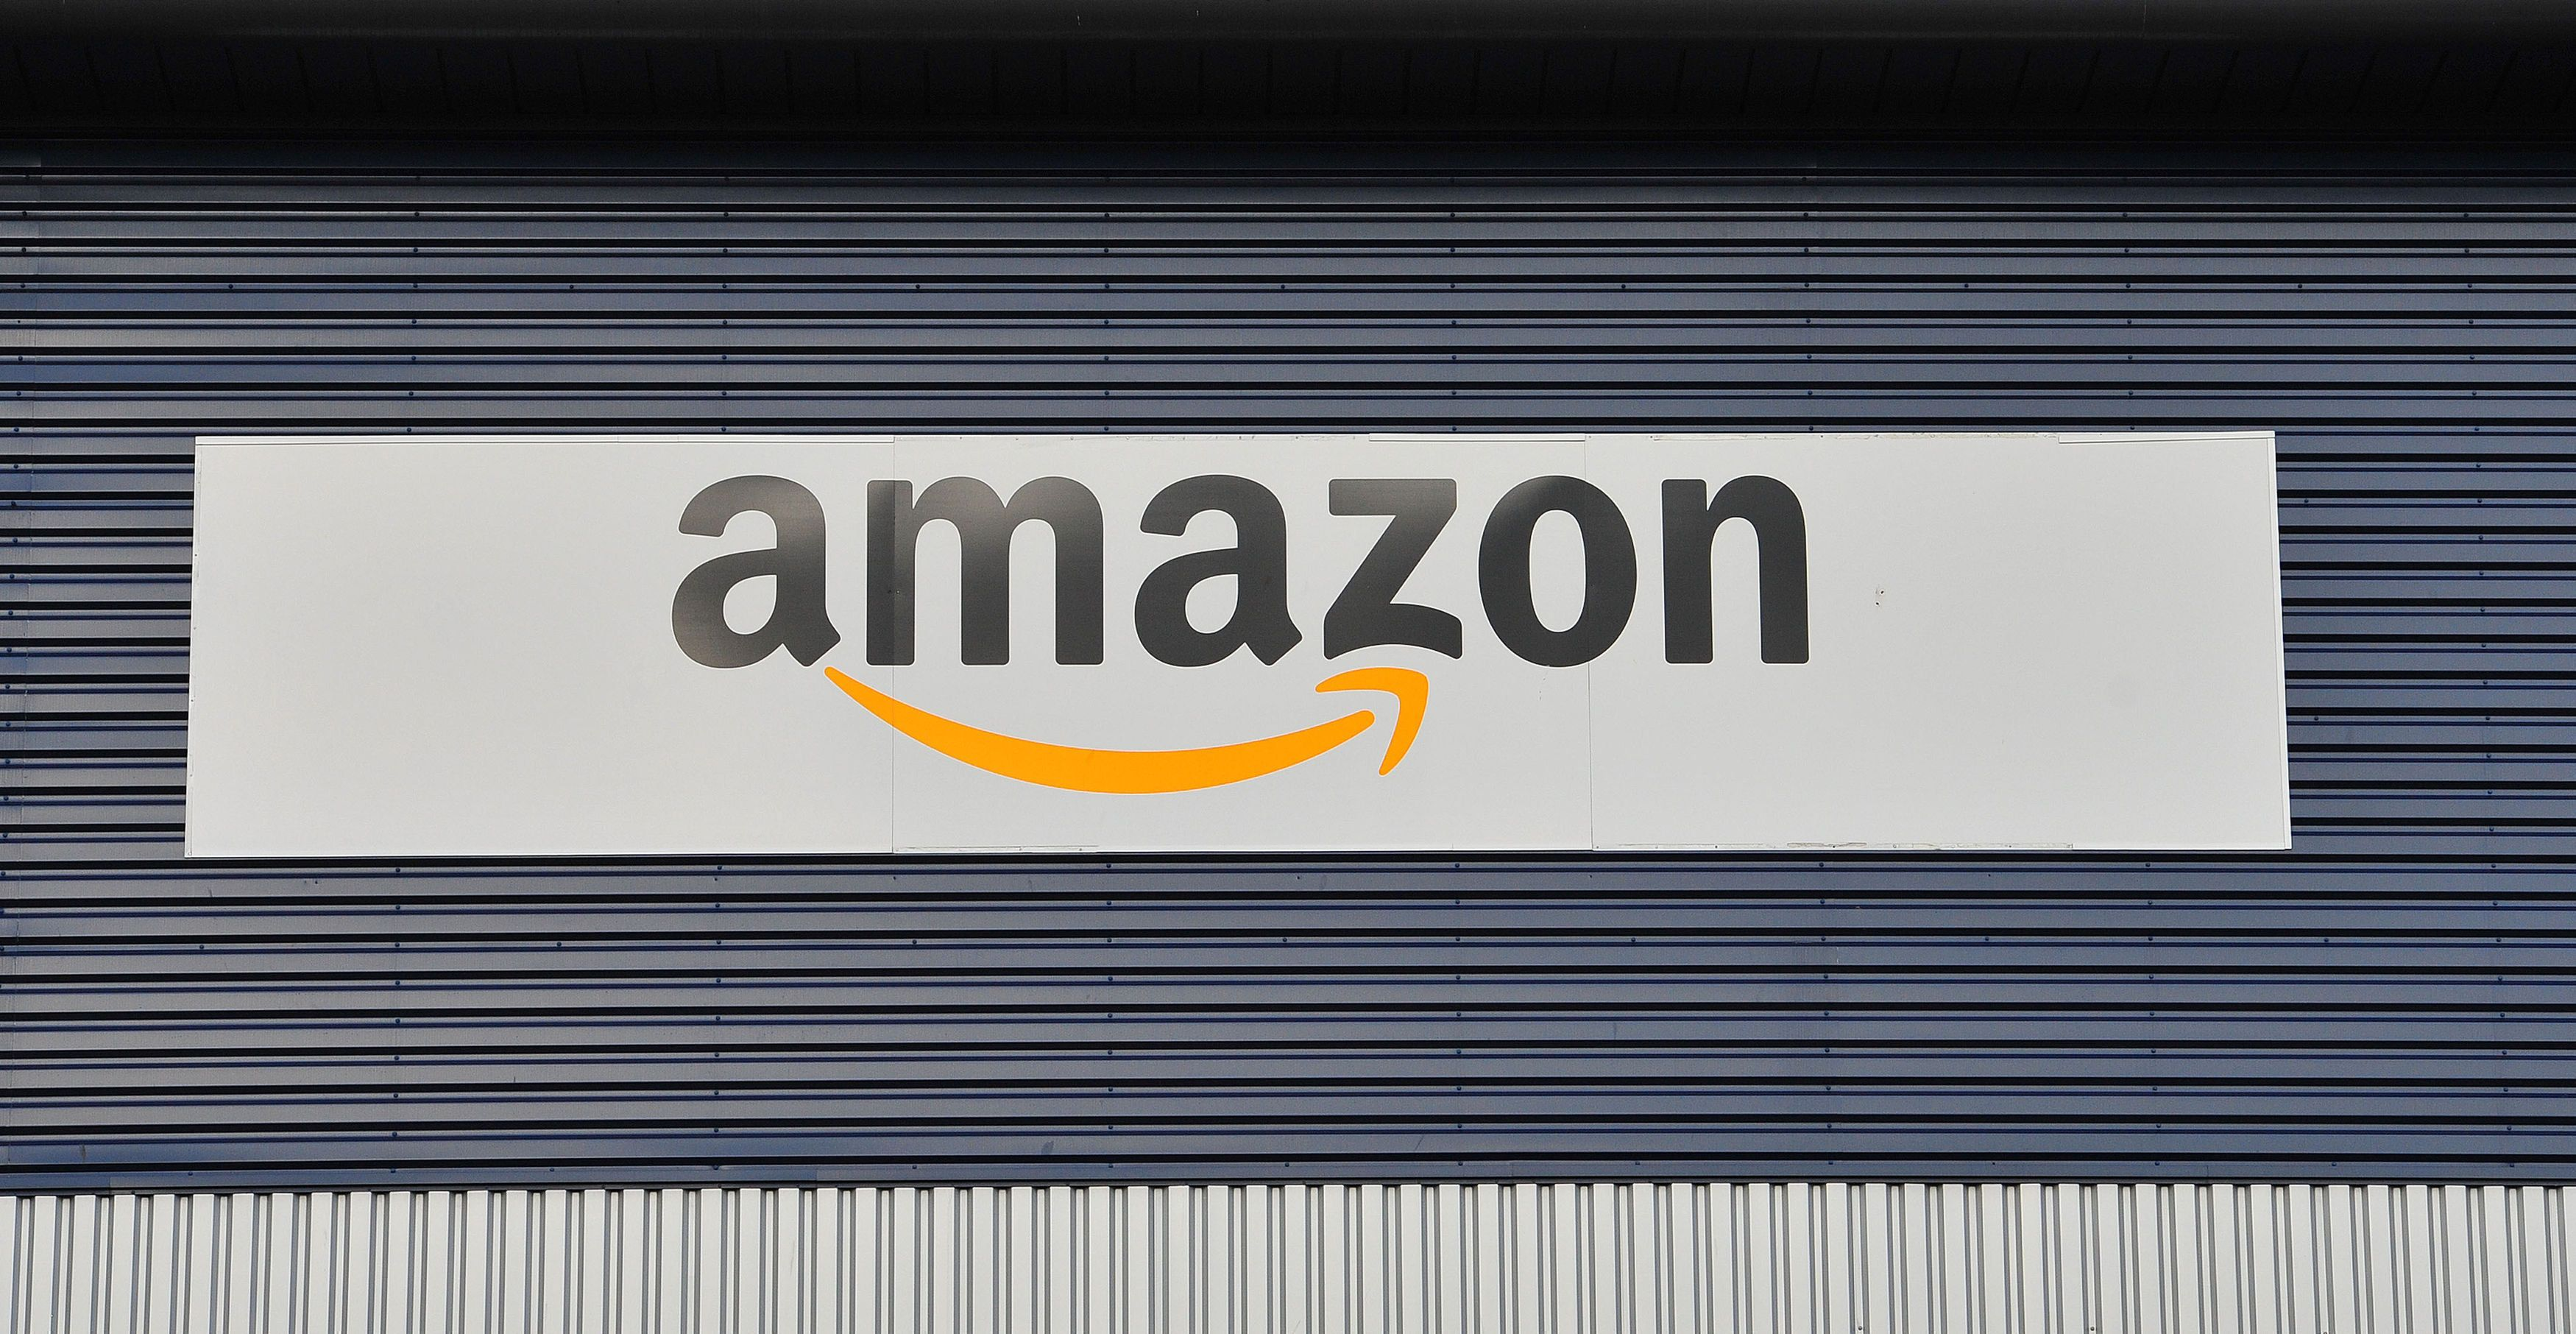 Chancellor Philip Hammond considering 'Amazon tax' for online retailers